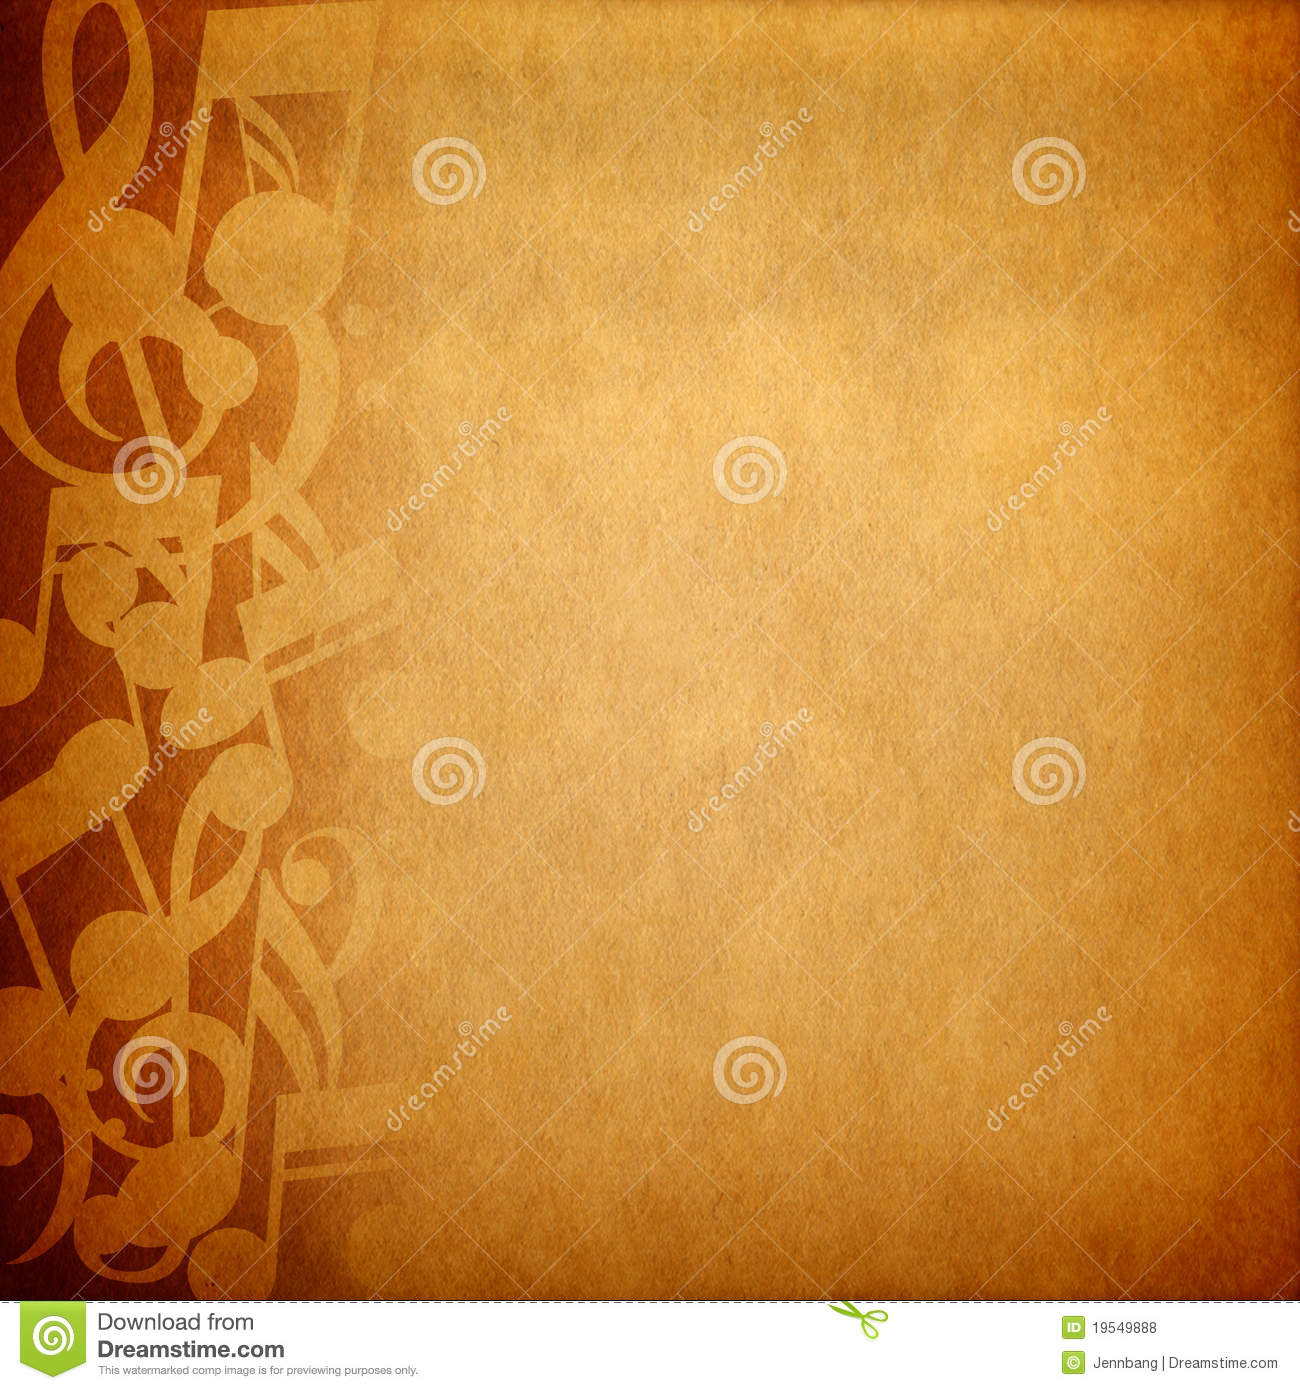 Fall Powerpoint Wallpaper Music Note Background Stock Photo Image Of Abstract